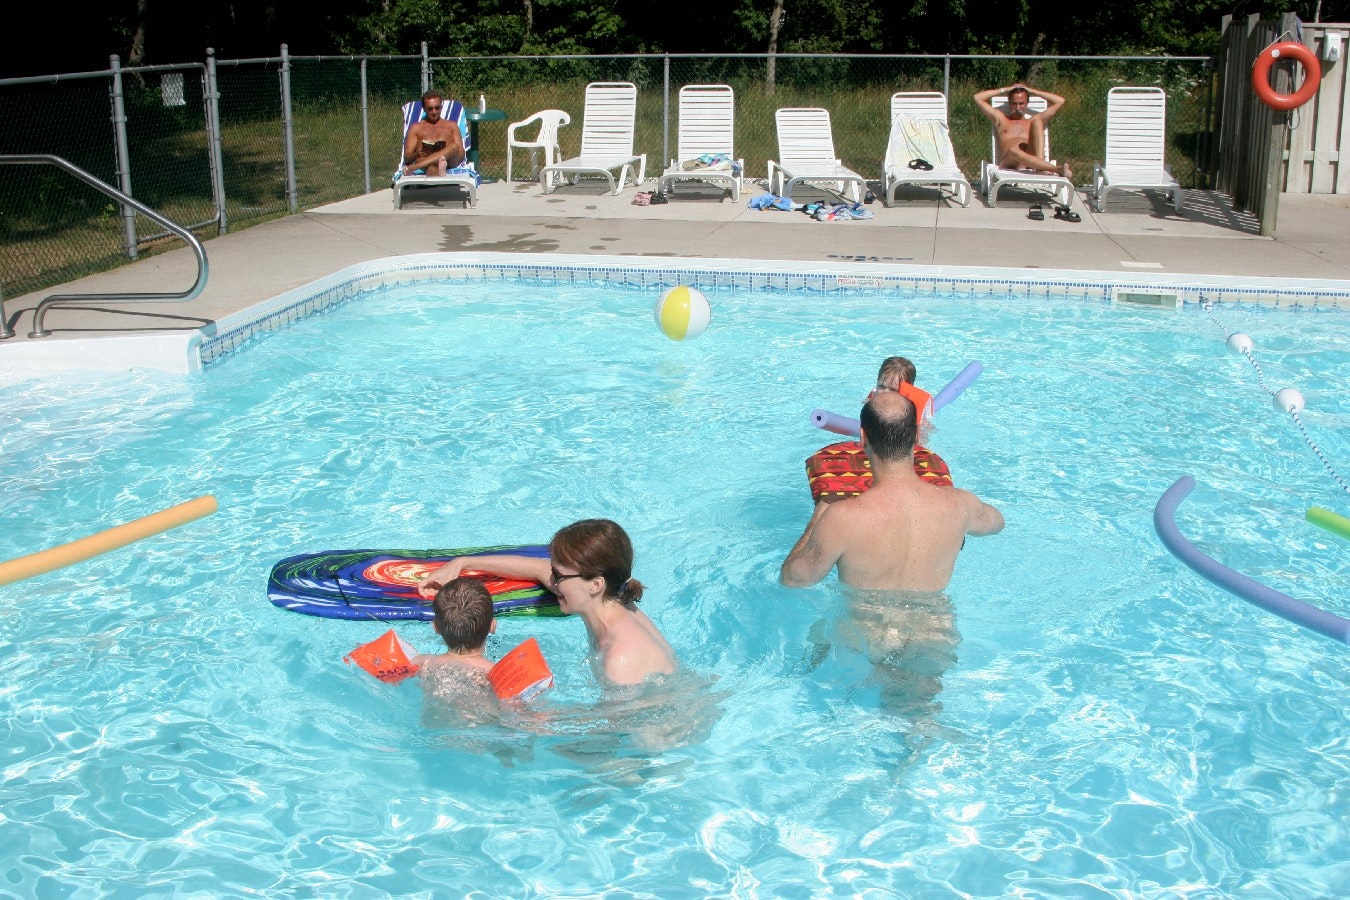 Bare nudist family pool, intersexuality naked